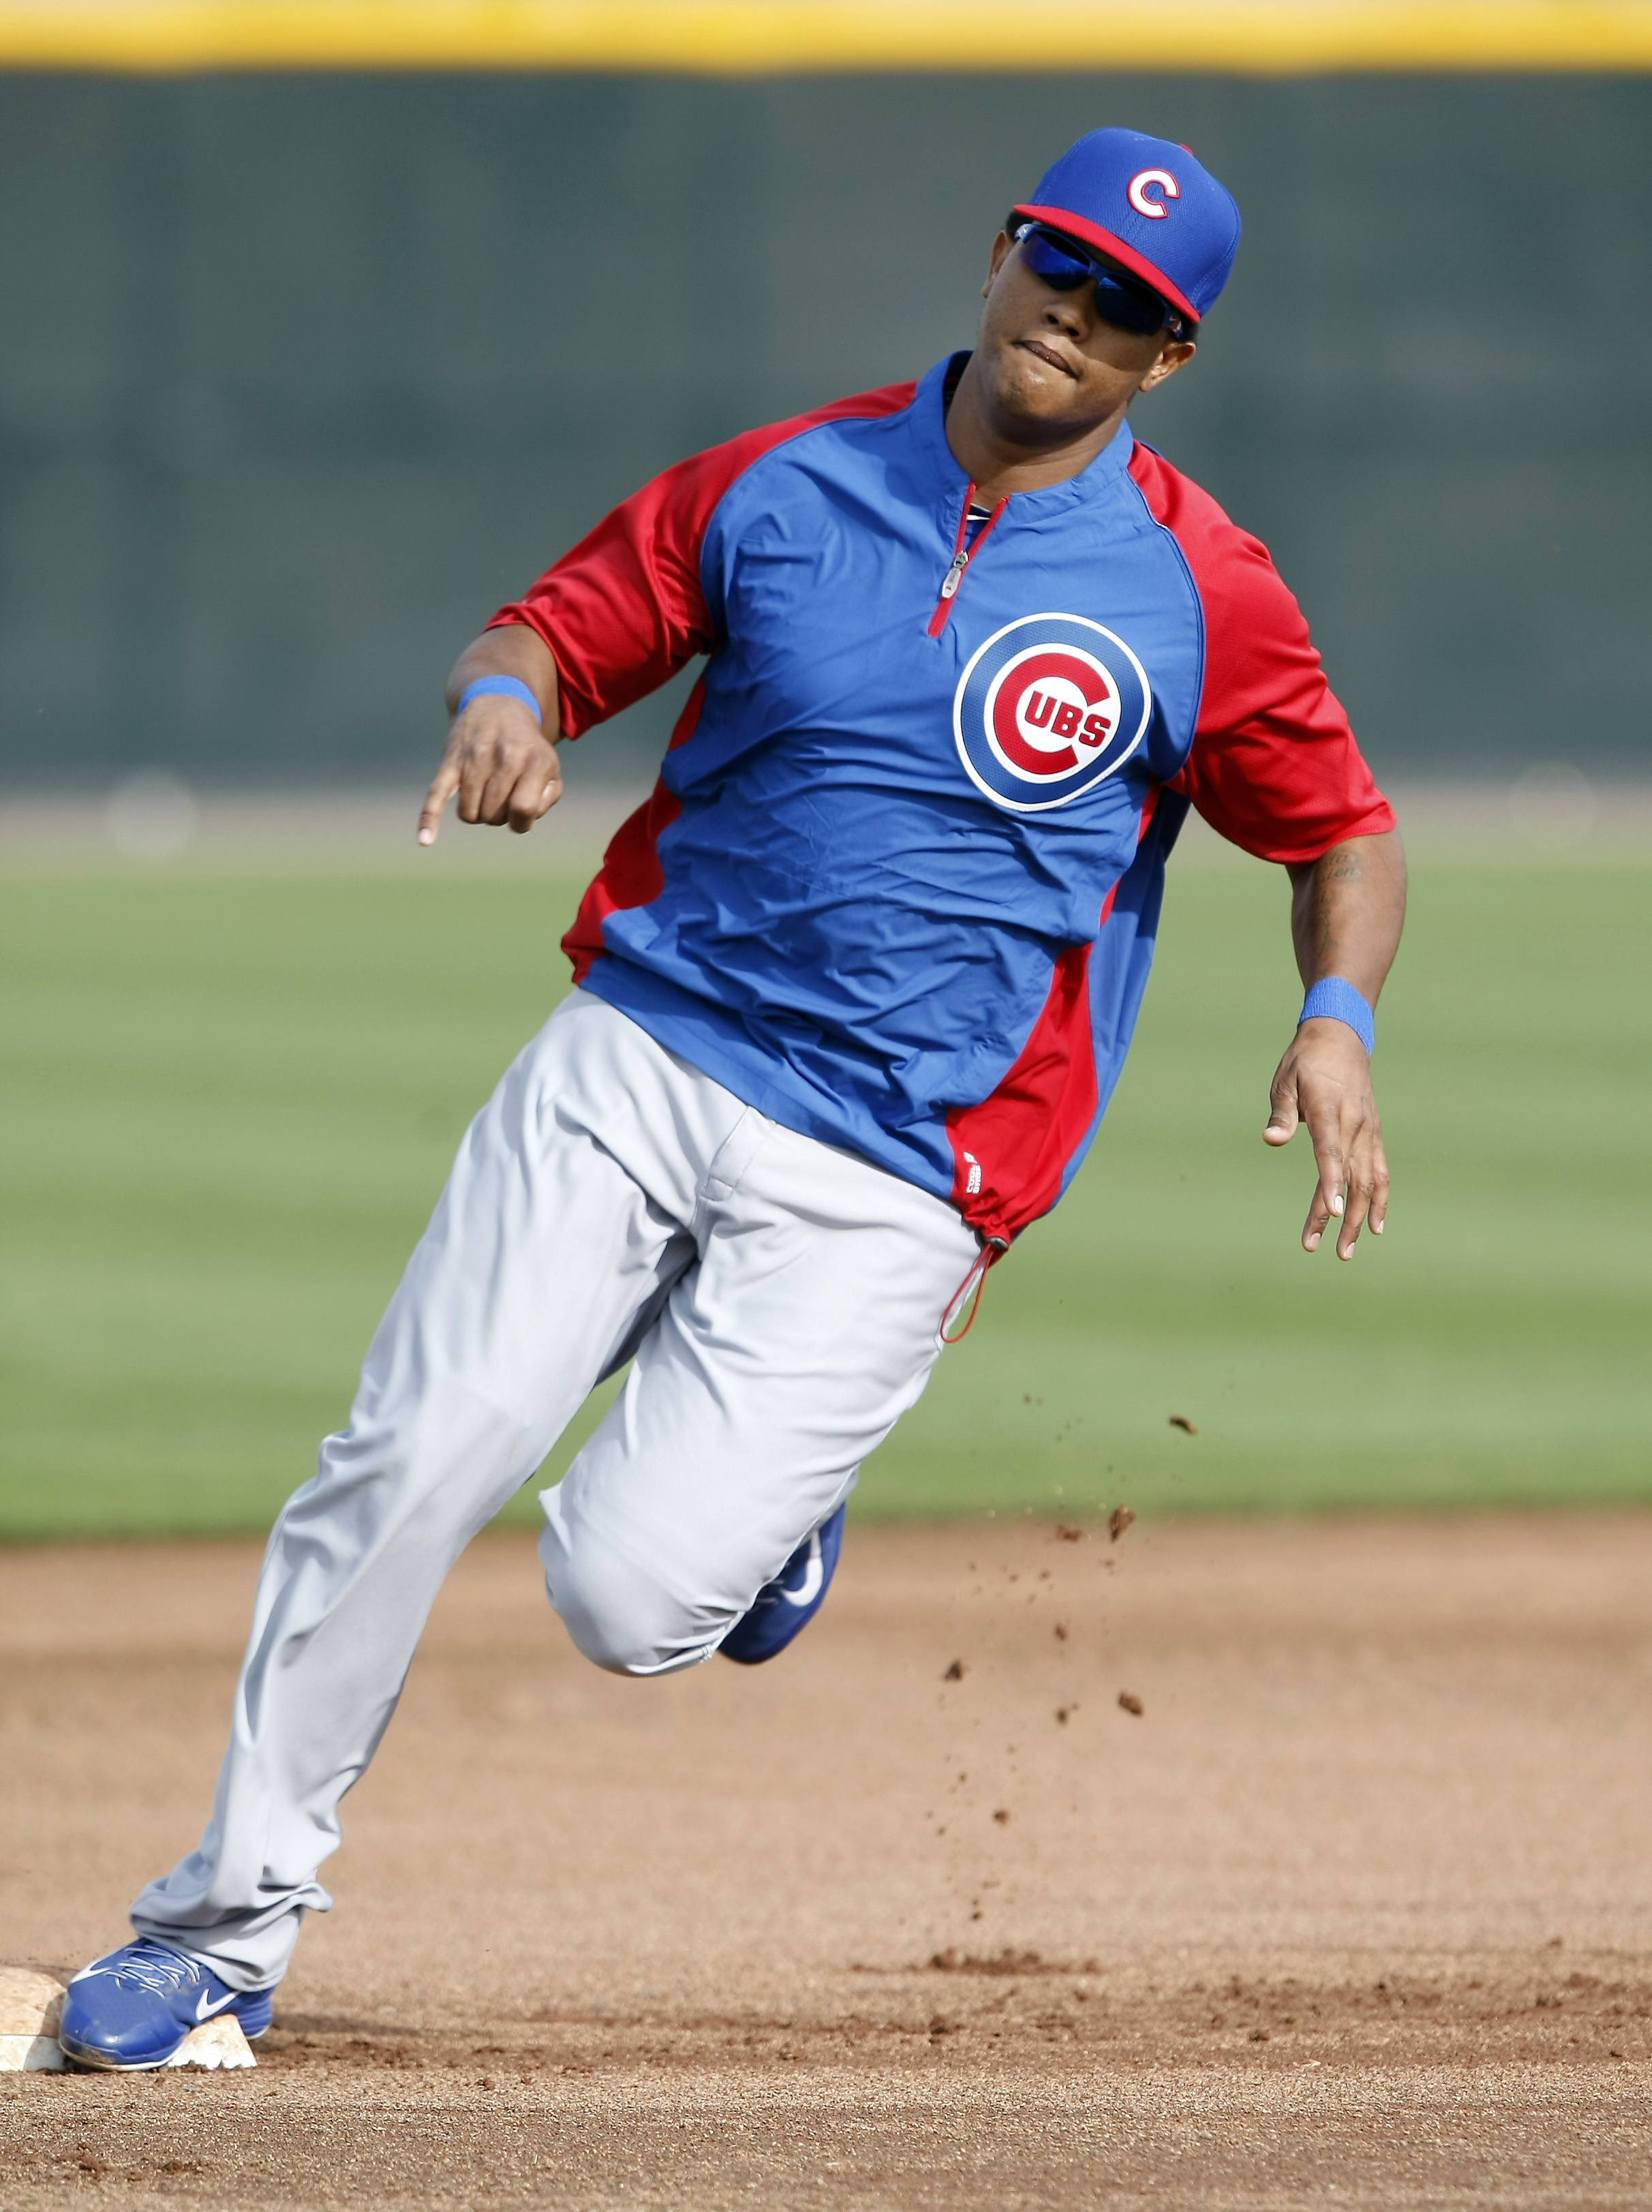 The upcoming season is a pivotal one for Cubs shortstop Starlin Castro, not only for him but for the entire organization.